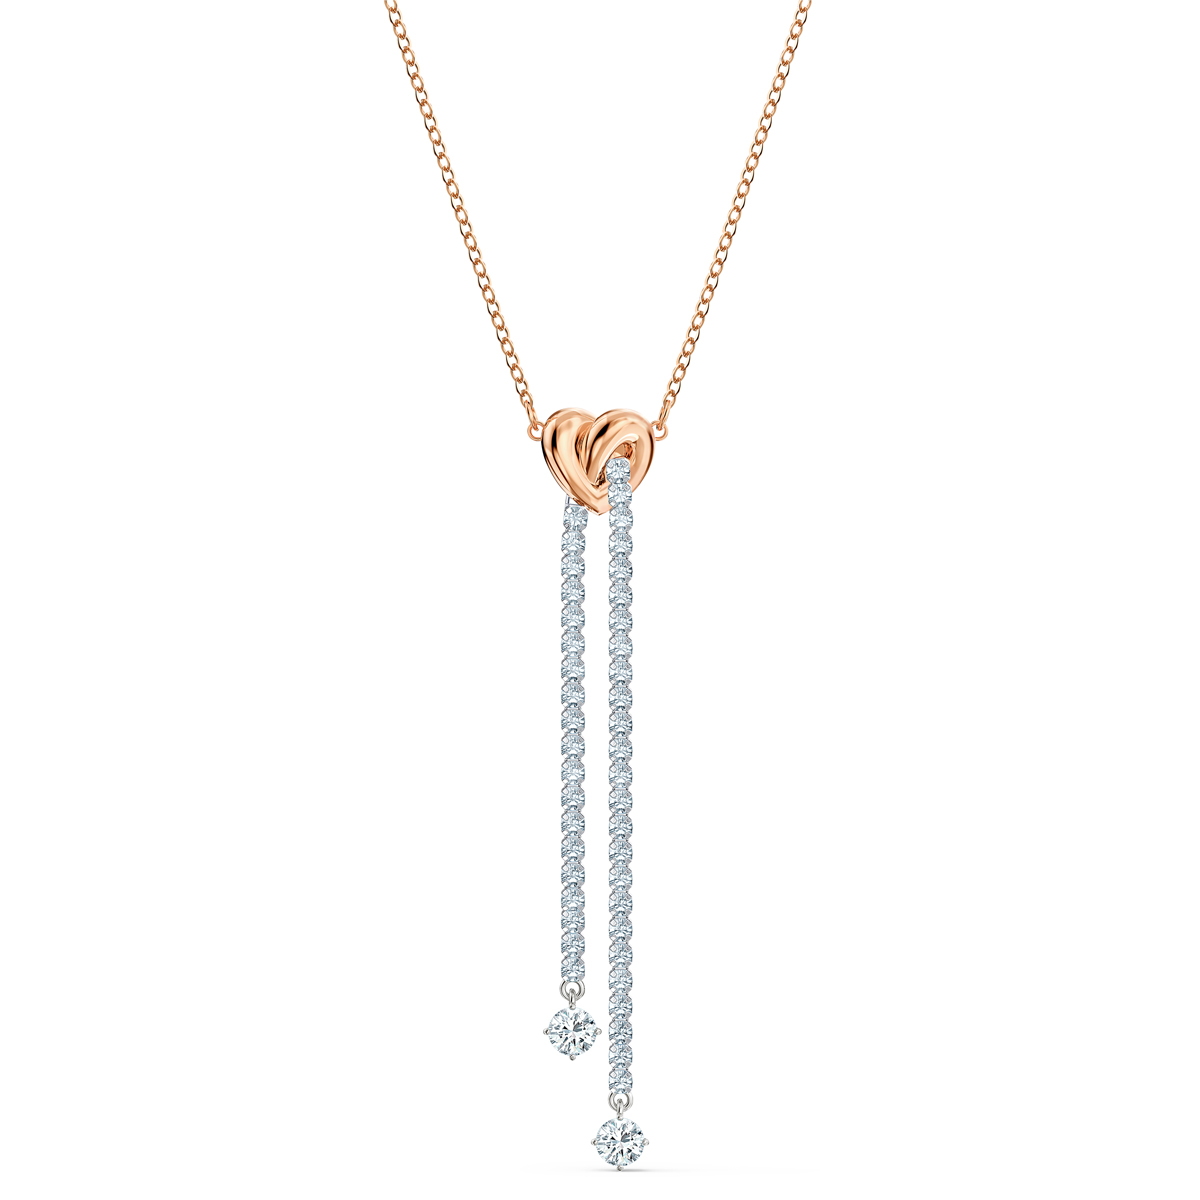 Swarovski Crystal Lifelong Heart Cupchain Necklace